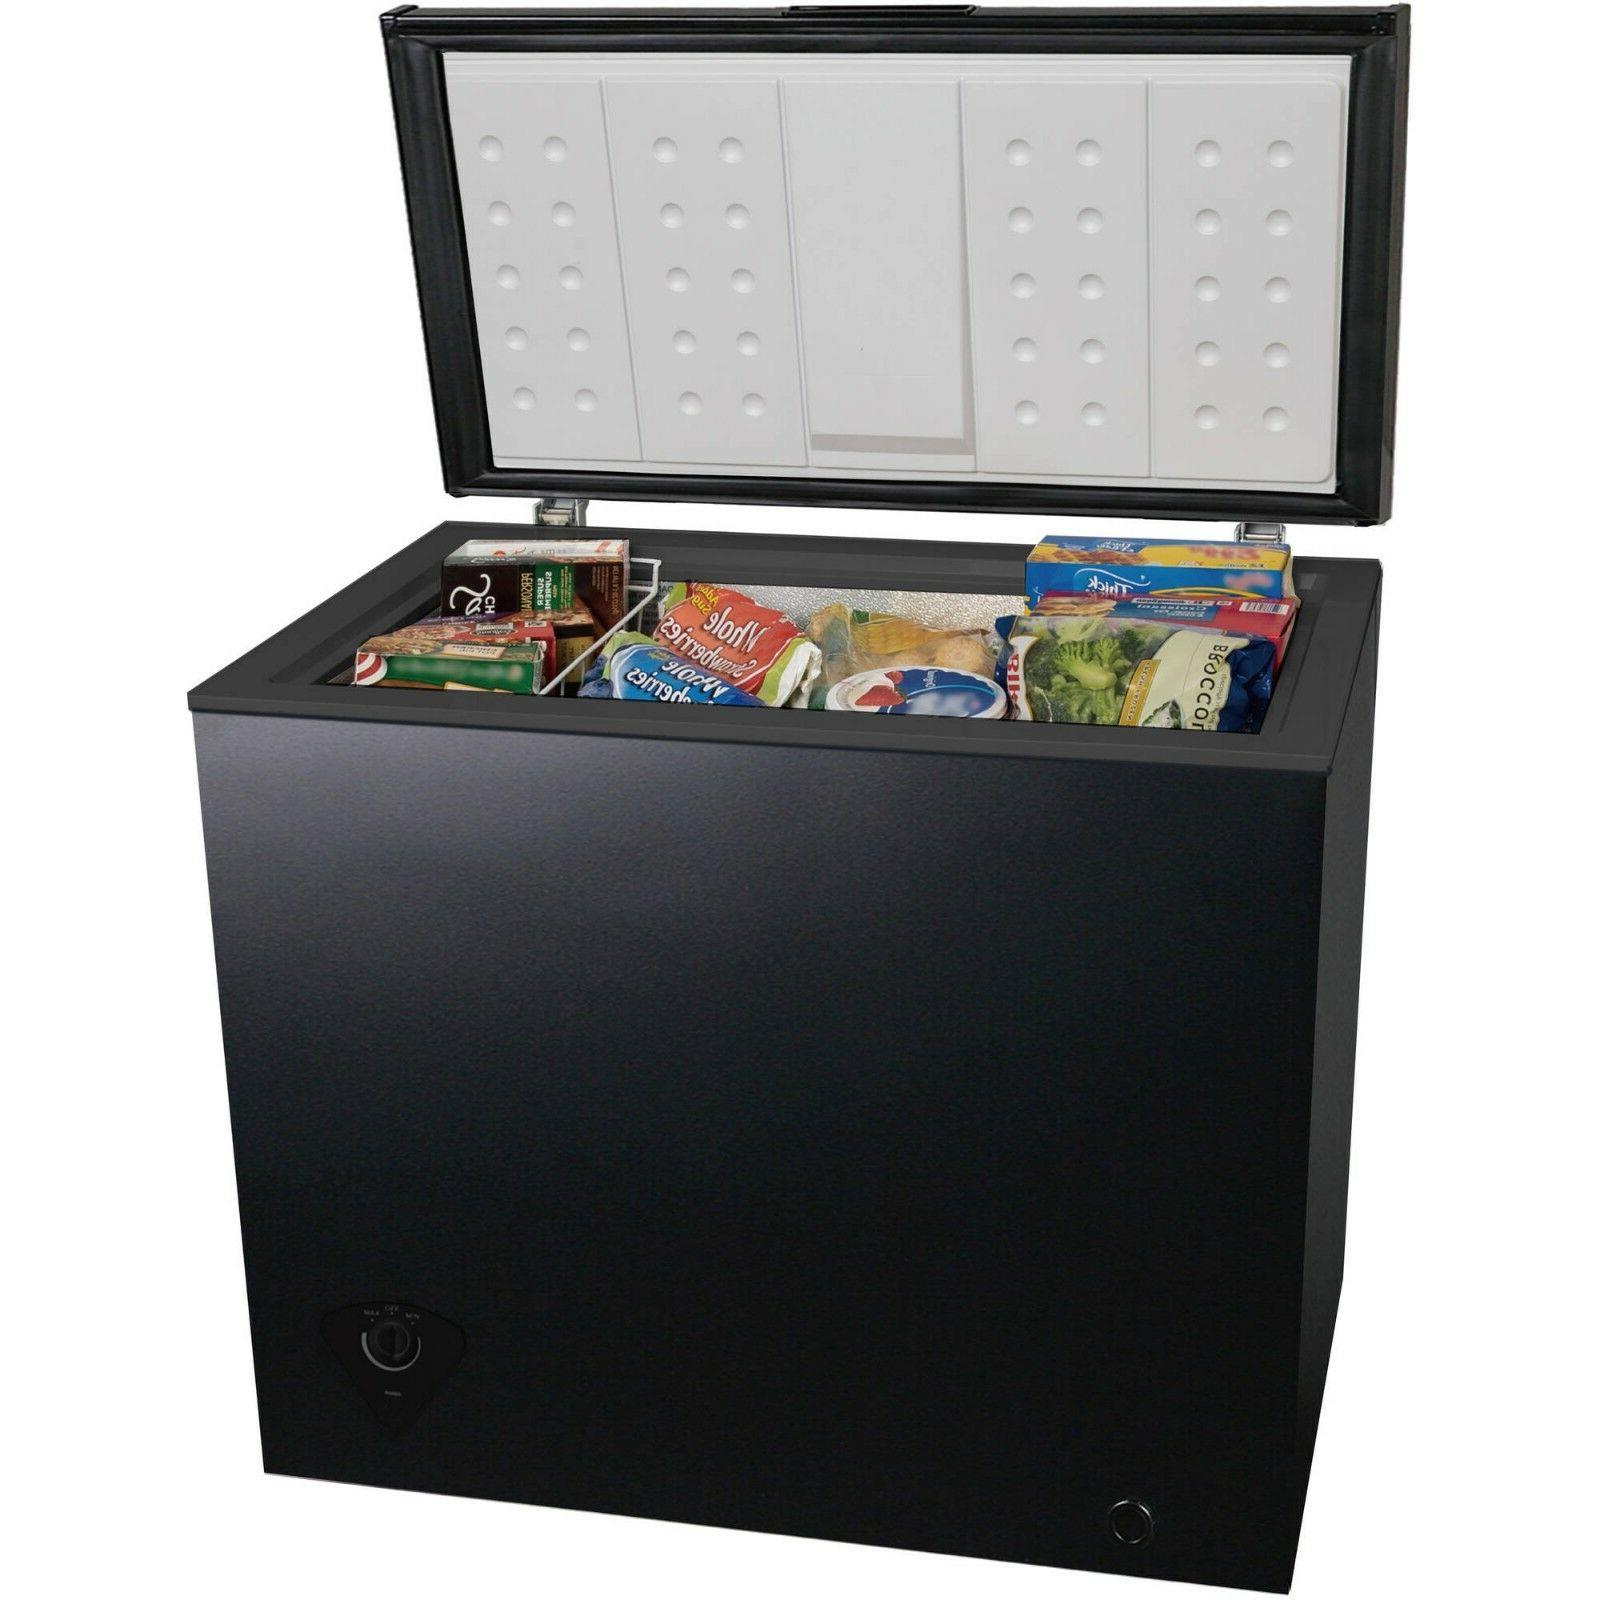 Best 7 Cubic Foot Chest Freezer Upright Compact Food Storage